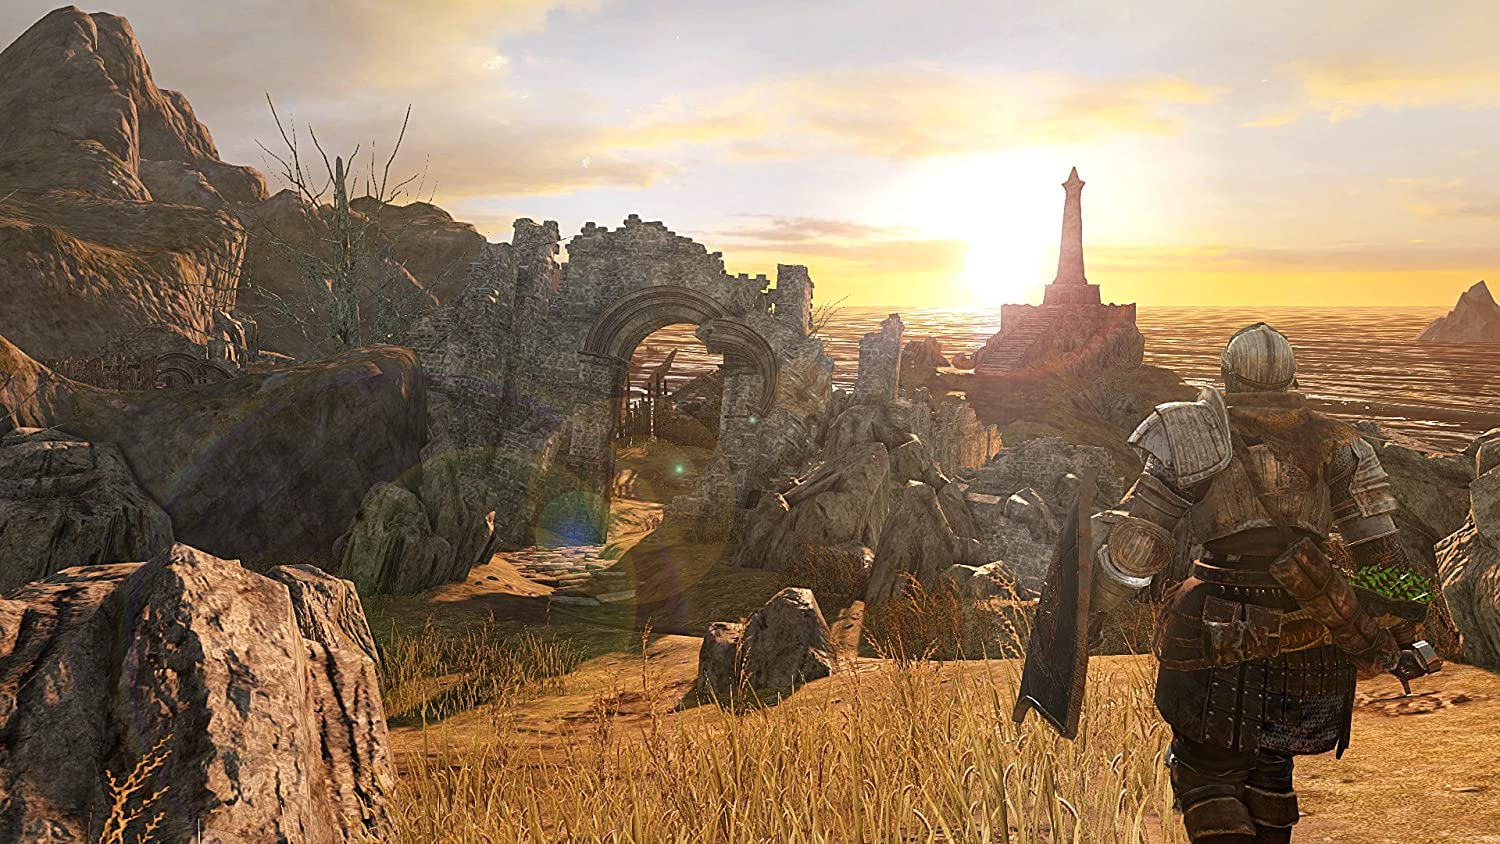 Amazon.com: Dark Souls II: Scholar of the First Sin - PlayStation ...